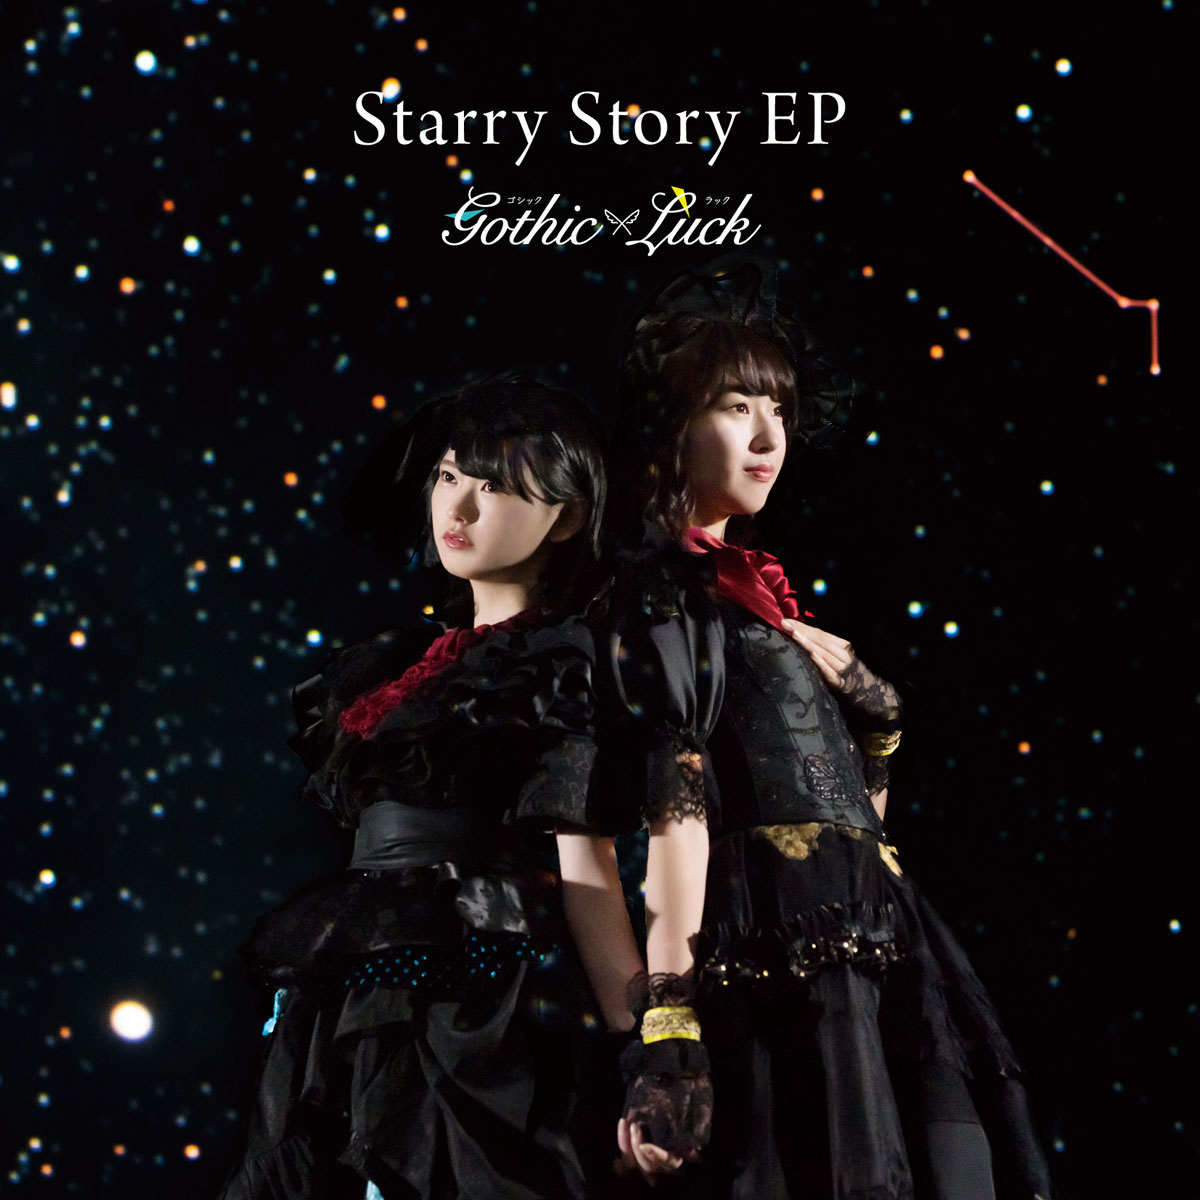 Gothic×Luck「Starry Story EP」通常盤